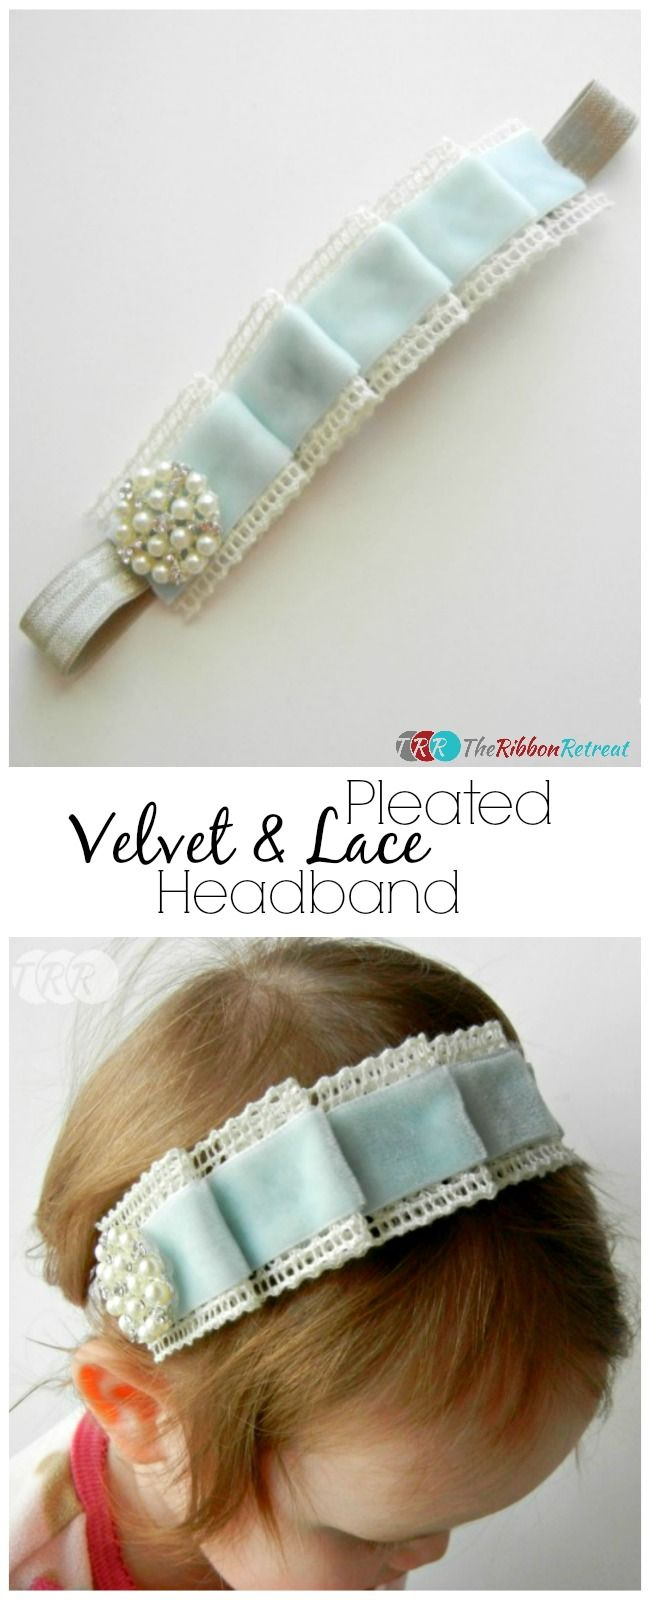 Pleated Velvet and Lace Headband Tutorial - The Ribbon Retreat Blog